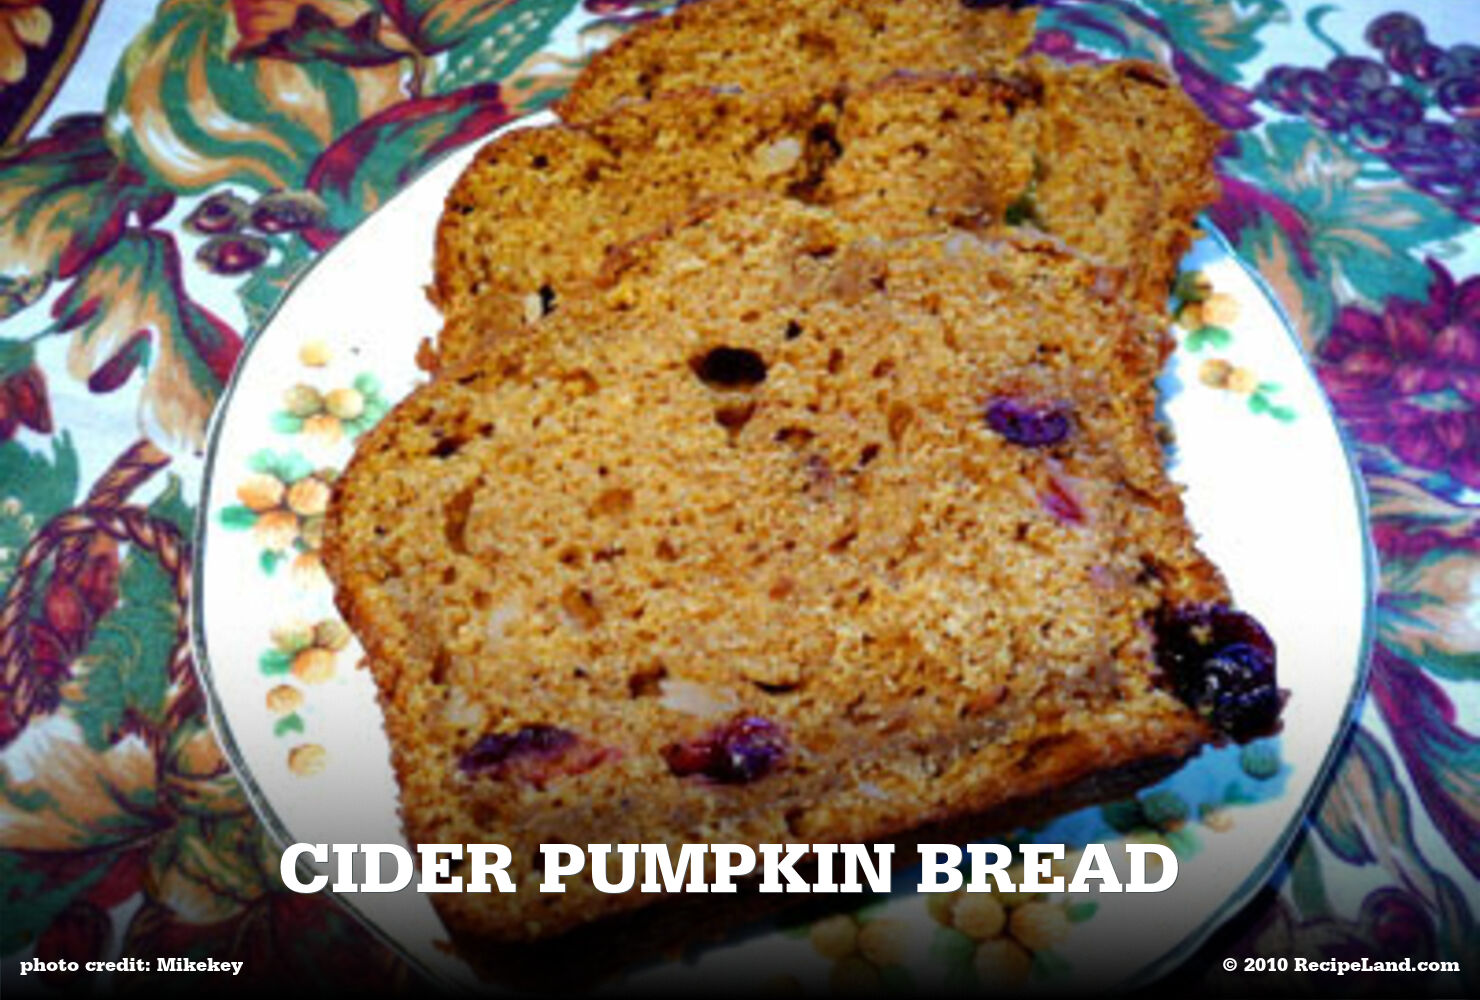 Cider Pumpkin Bread